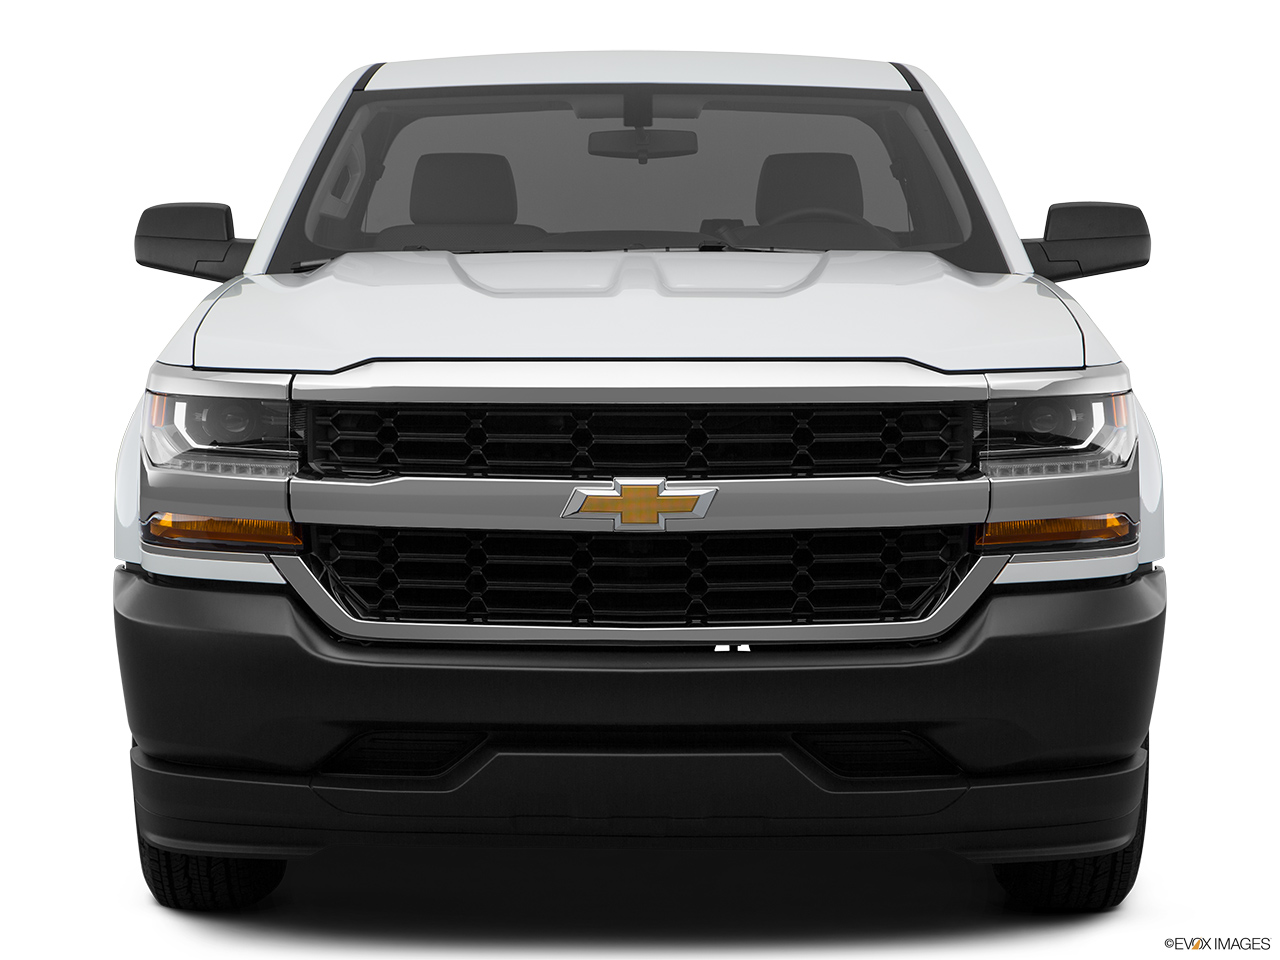 Chevrolet Silverado 2018 1500 Base, Saudi Arabia, Low/wide front.